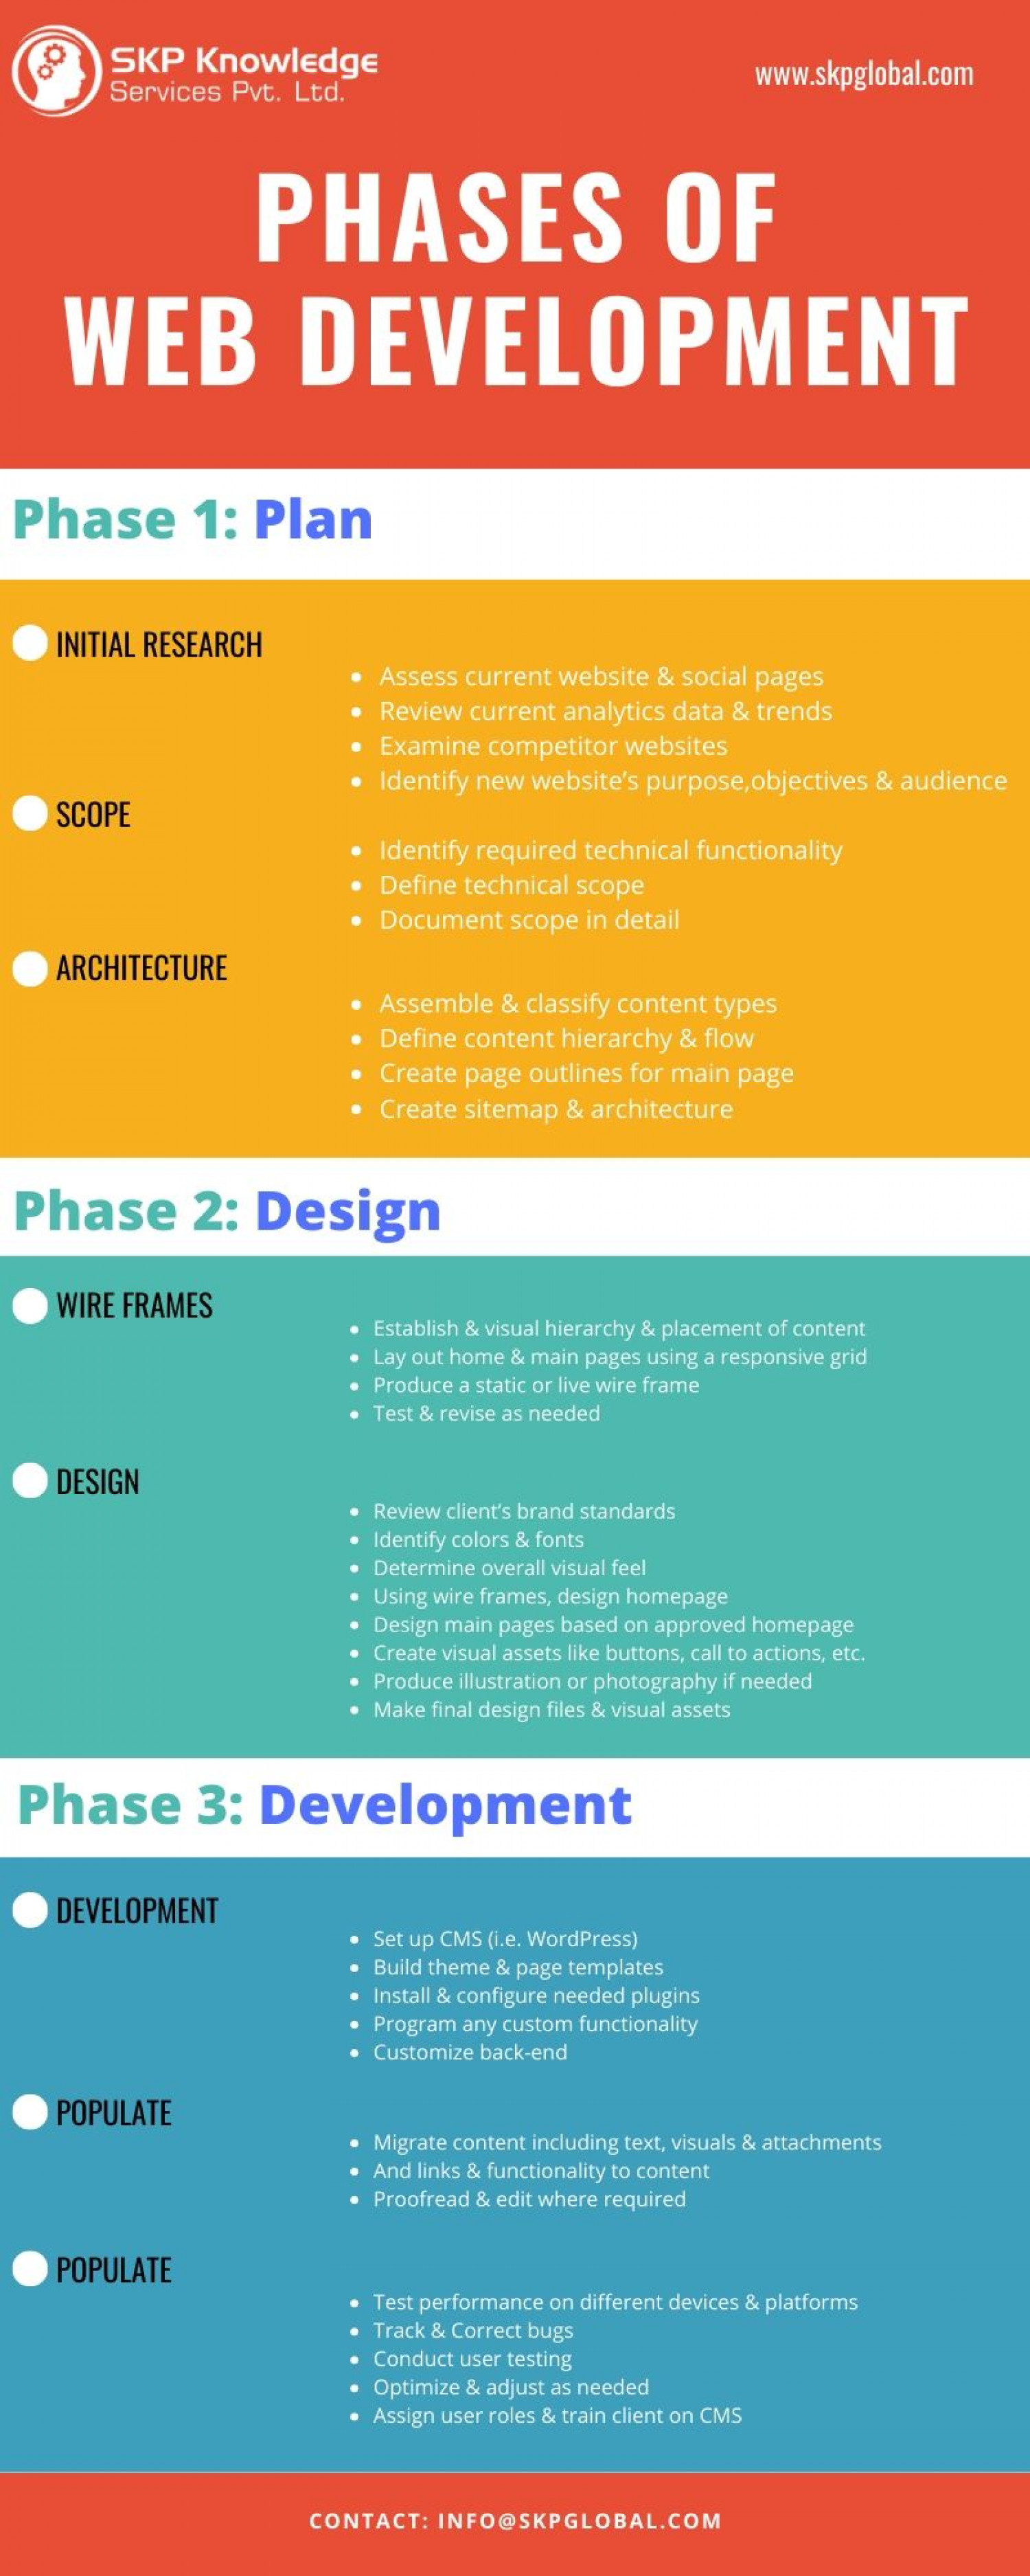 Phases of Web Development Infographic